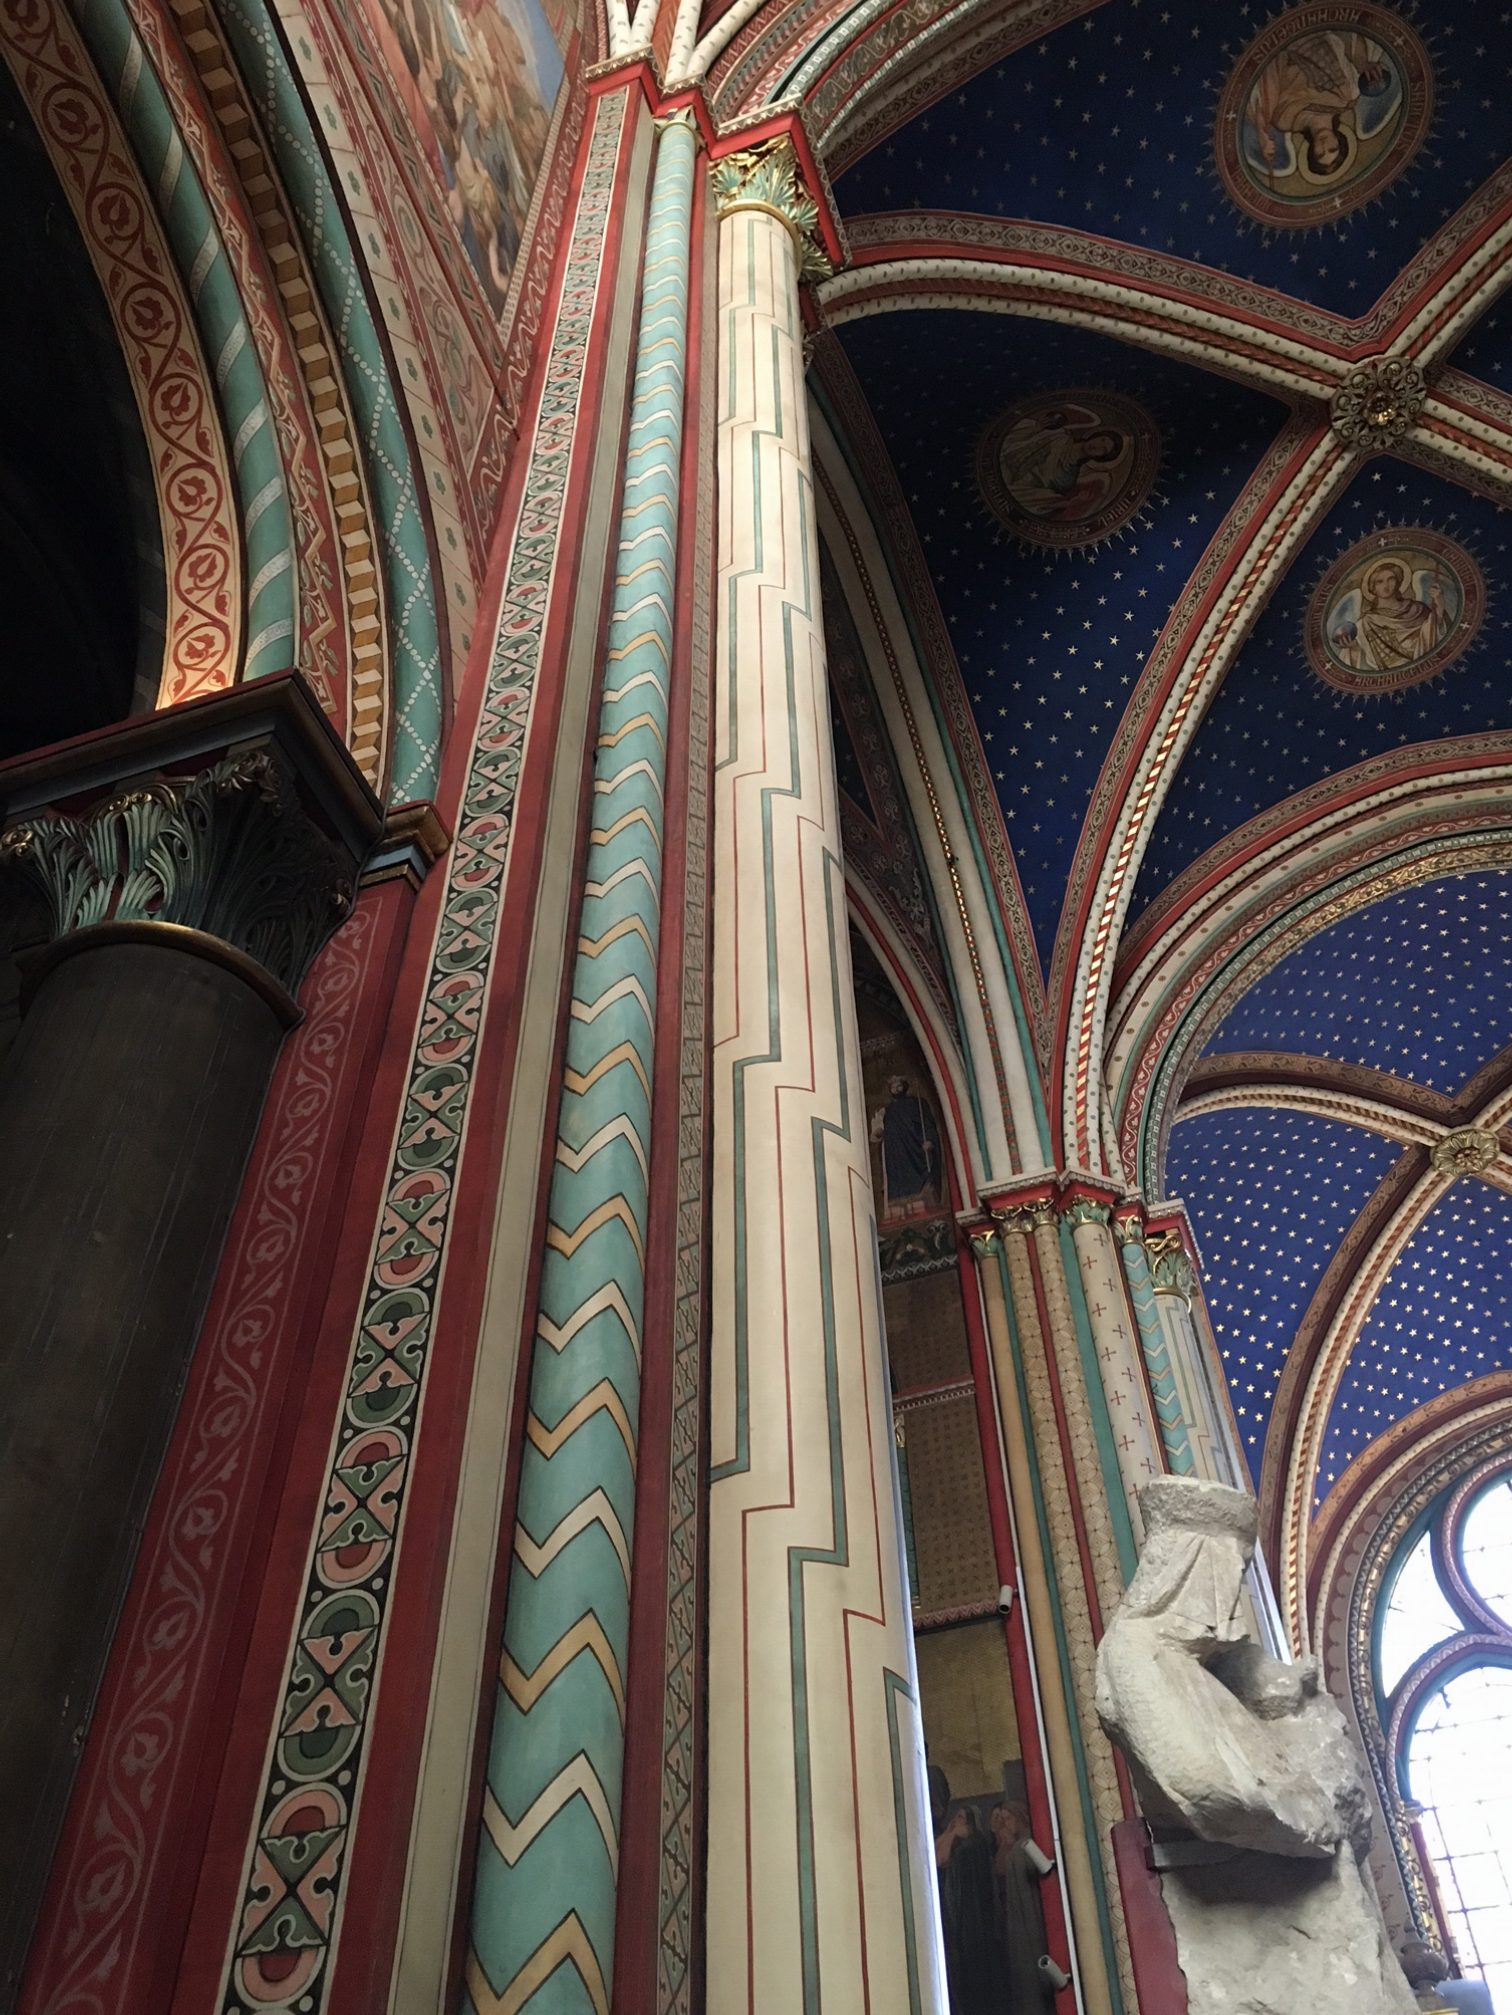 The interior of Eglise Sain Germain. The colorful columns rise into vaulted ceilings.